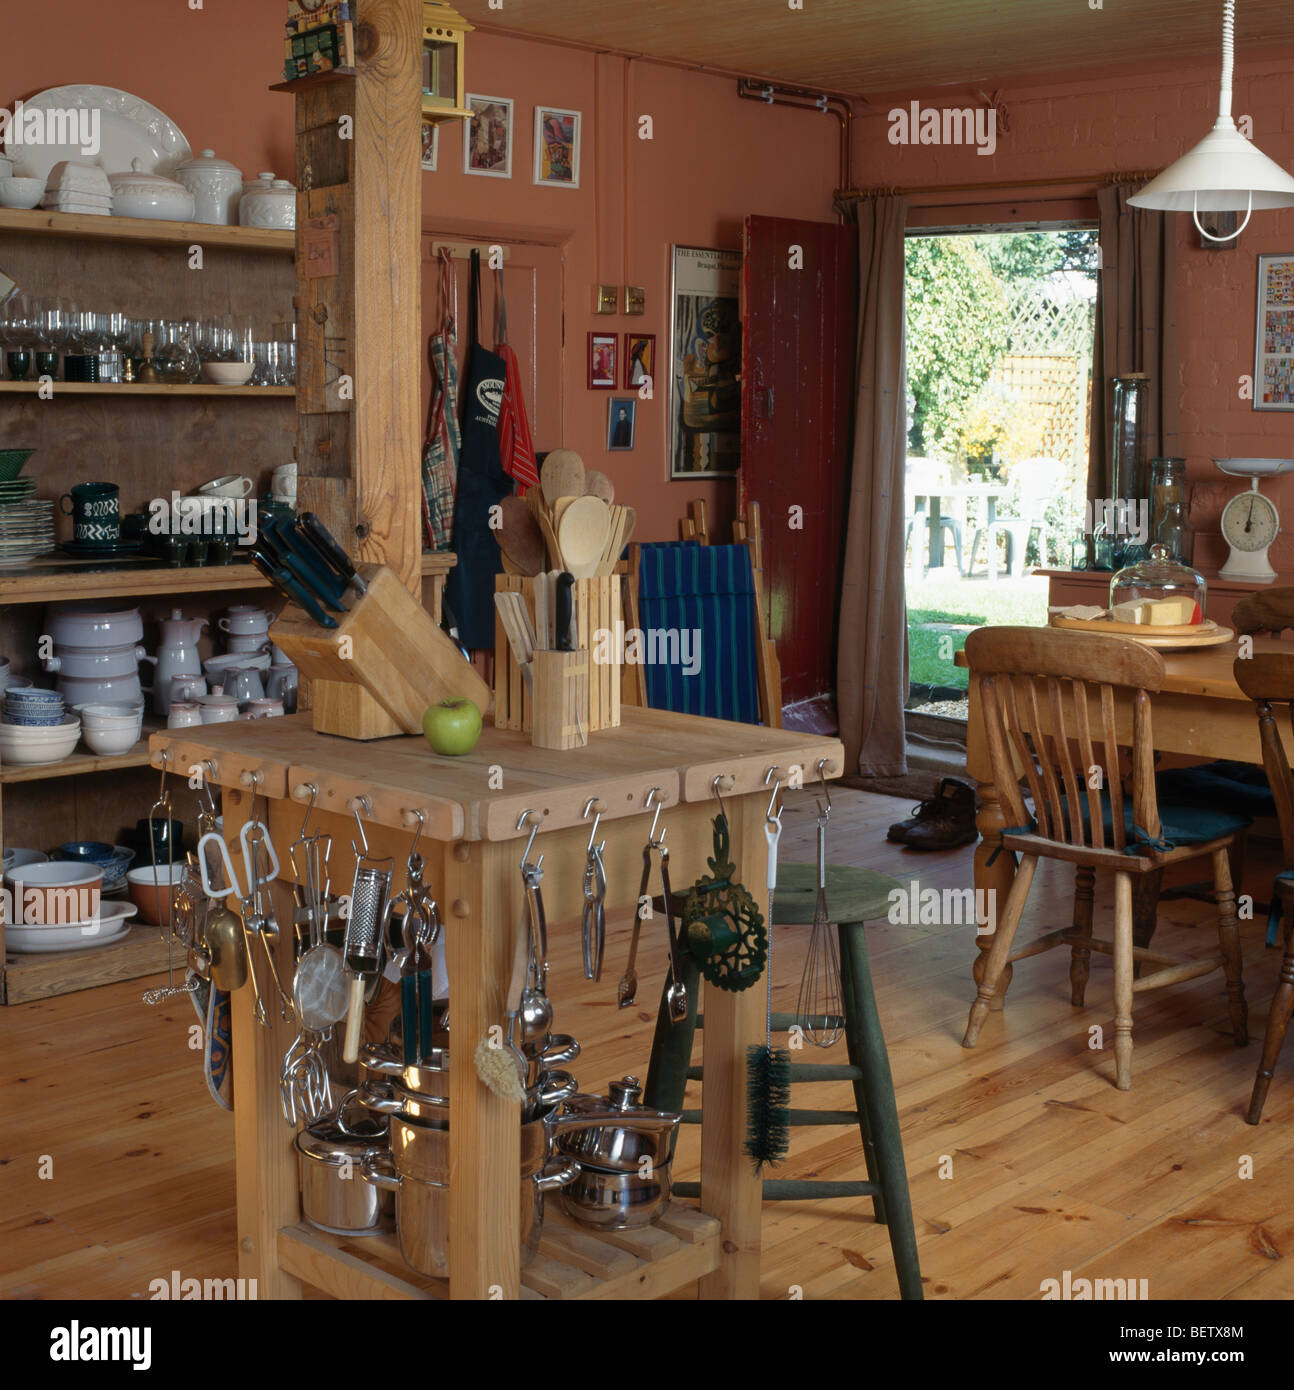 Metal Utensils On Hooks Butchers Block In The Centre Of Large Country Kitchen Dining Room With Wooden Flooring